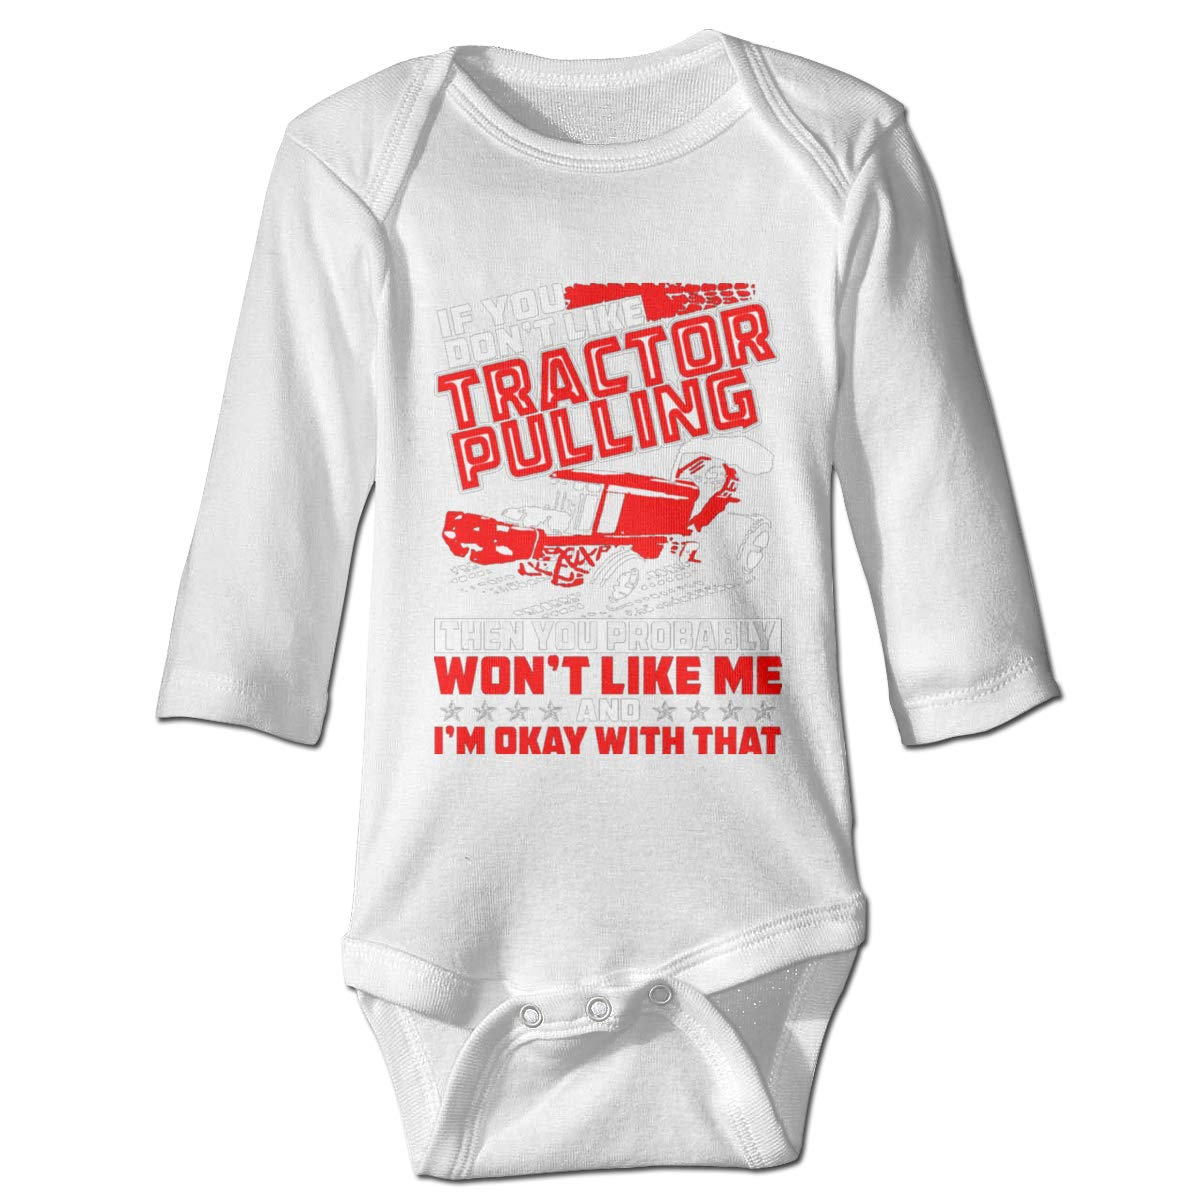 Jmgbsd Babys If You Dont Like Tractor Pulling Then Probably Won Triangle Body Suit Gray